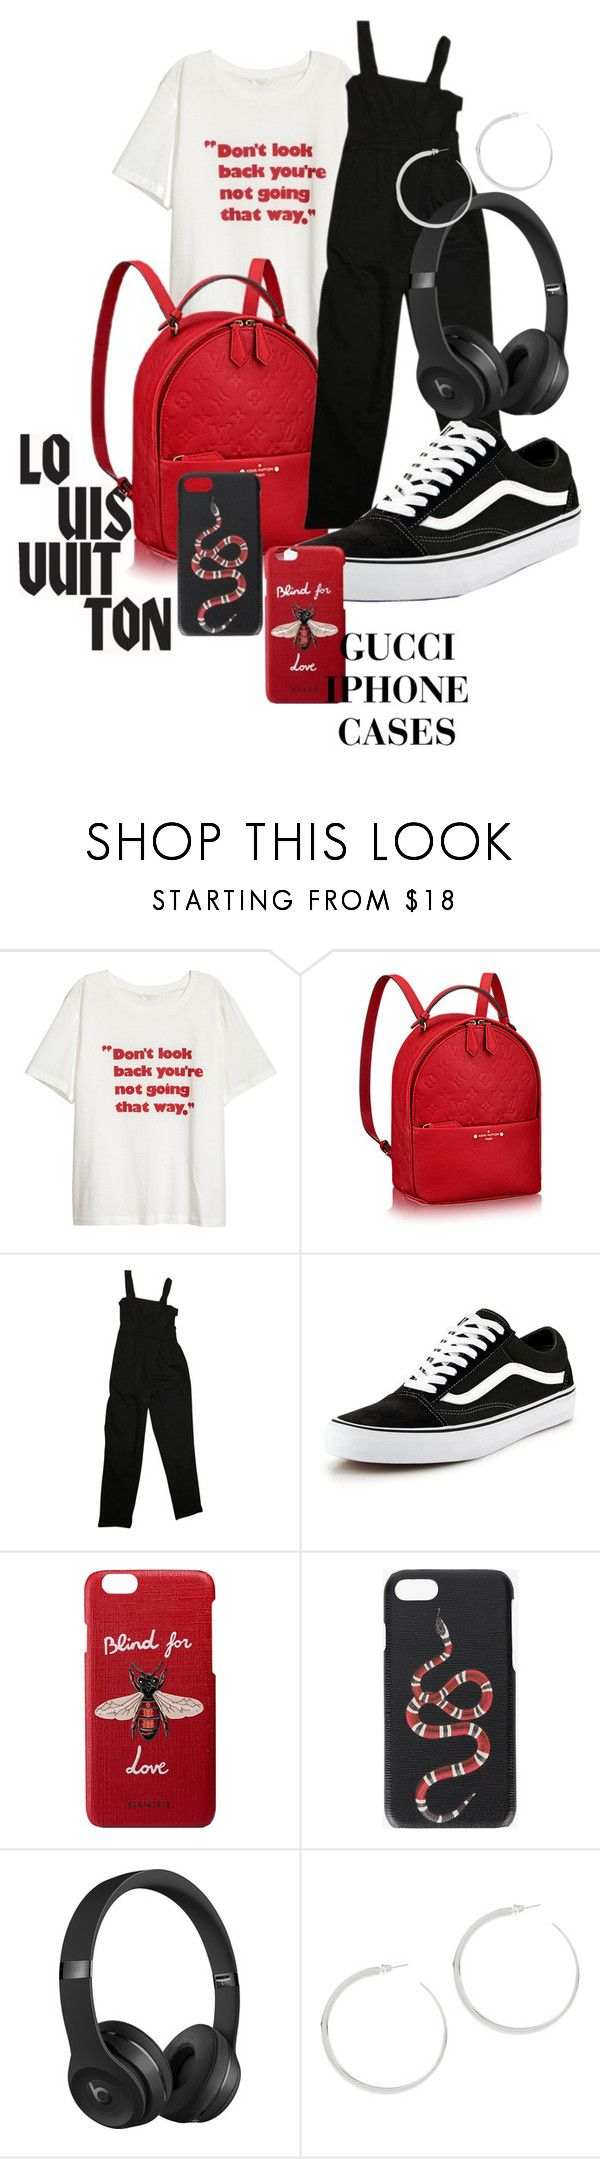 """""""Red and black 🖤❤️"""" by sheilaroset ❤ liked on Polyvore featuring Louis Vuitton, ASOS, Vans, Gucci and Beats by Dr. Dre"""